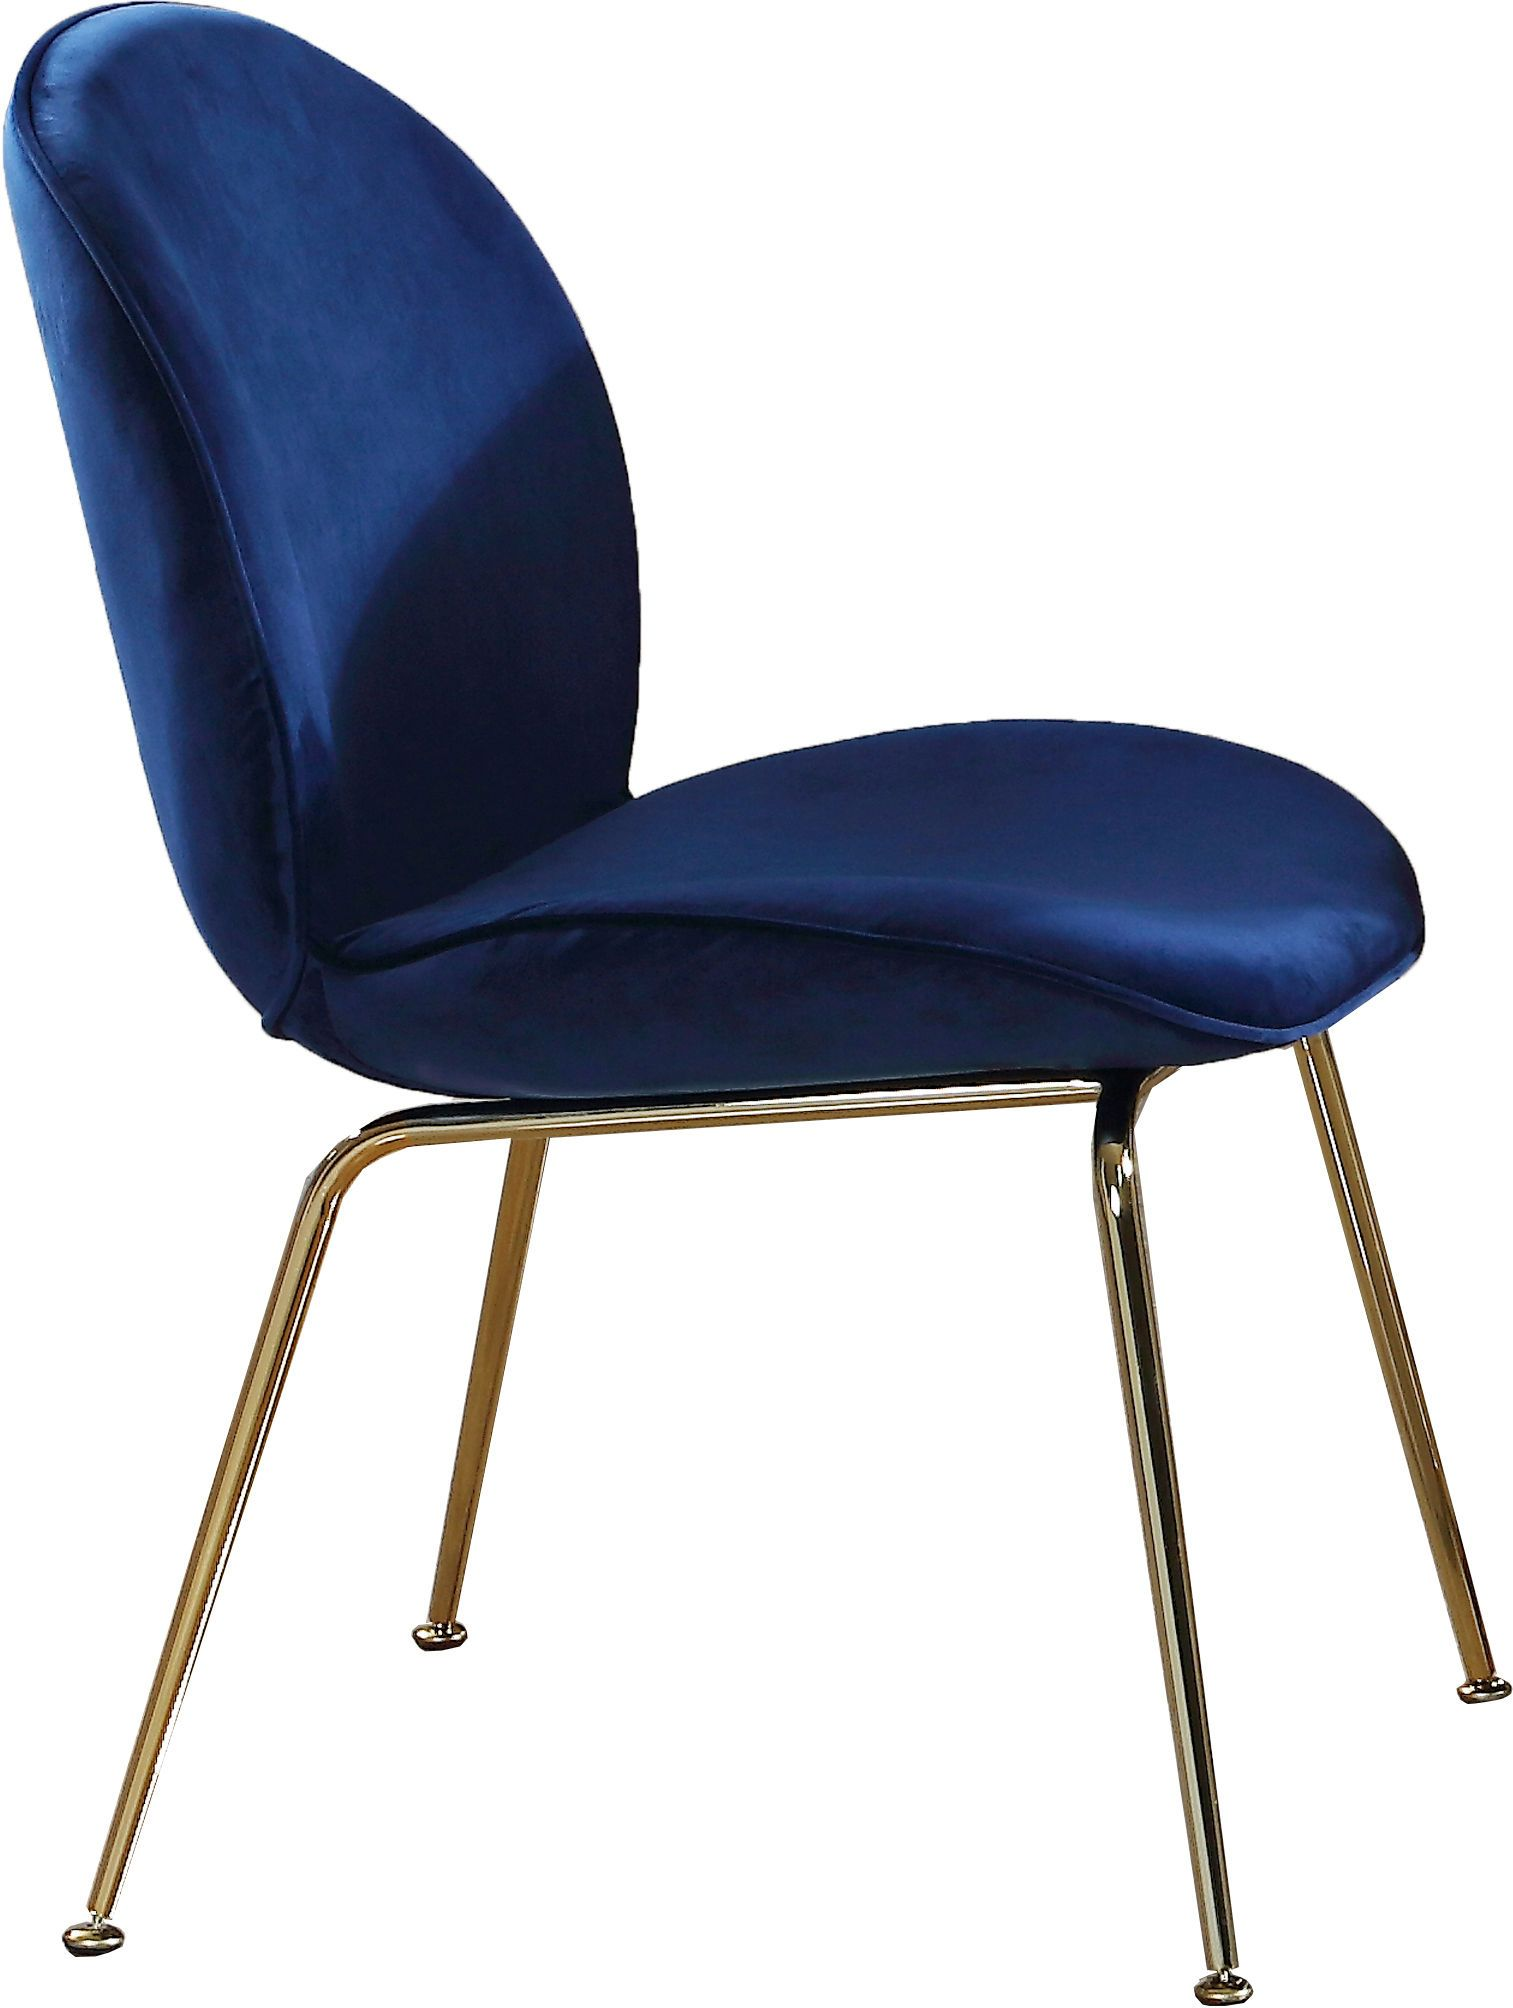 2 X Paris Blue Dining Chair In 2020 Blue Velvet Dining Chairs